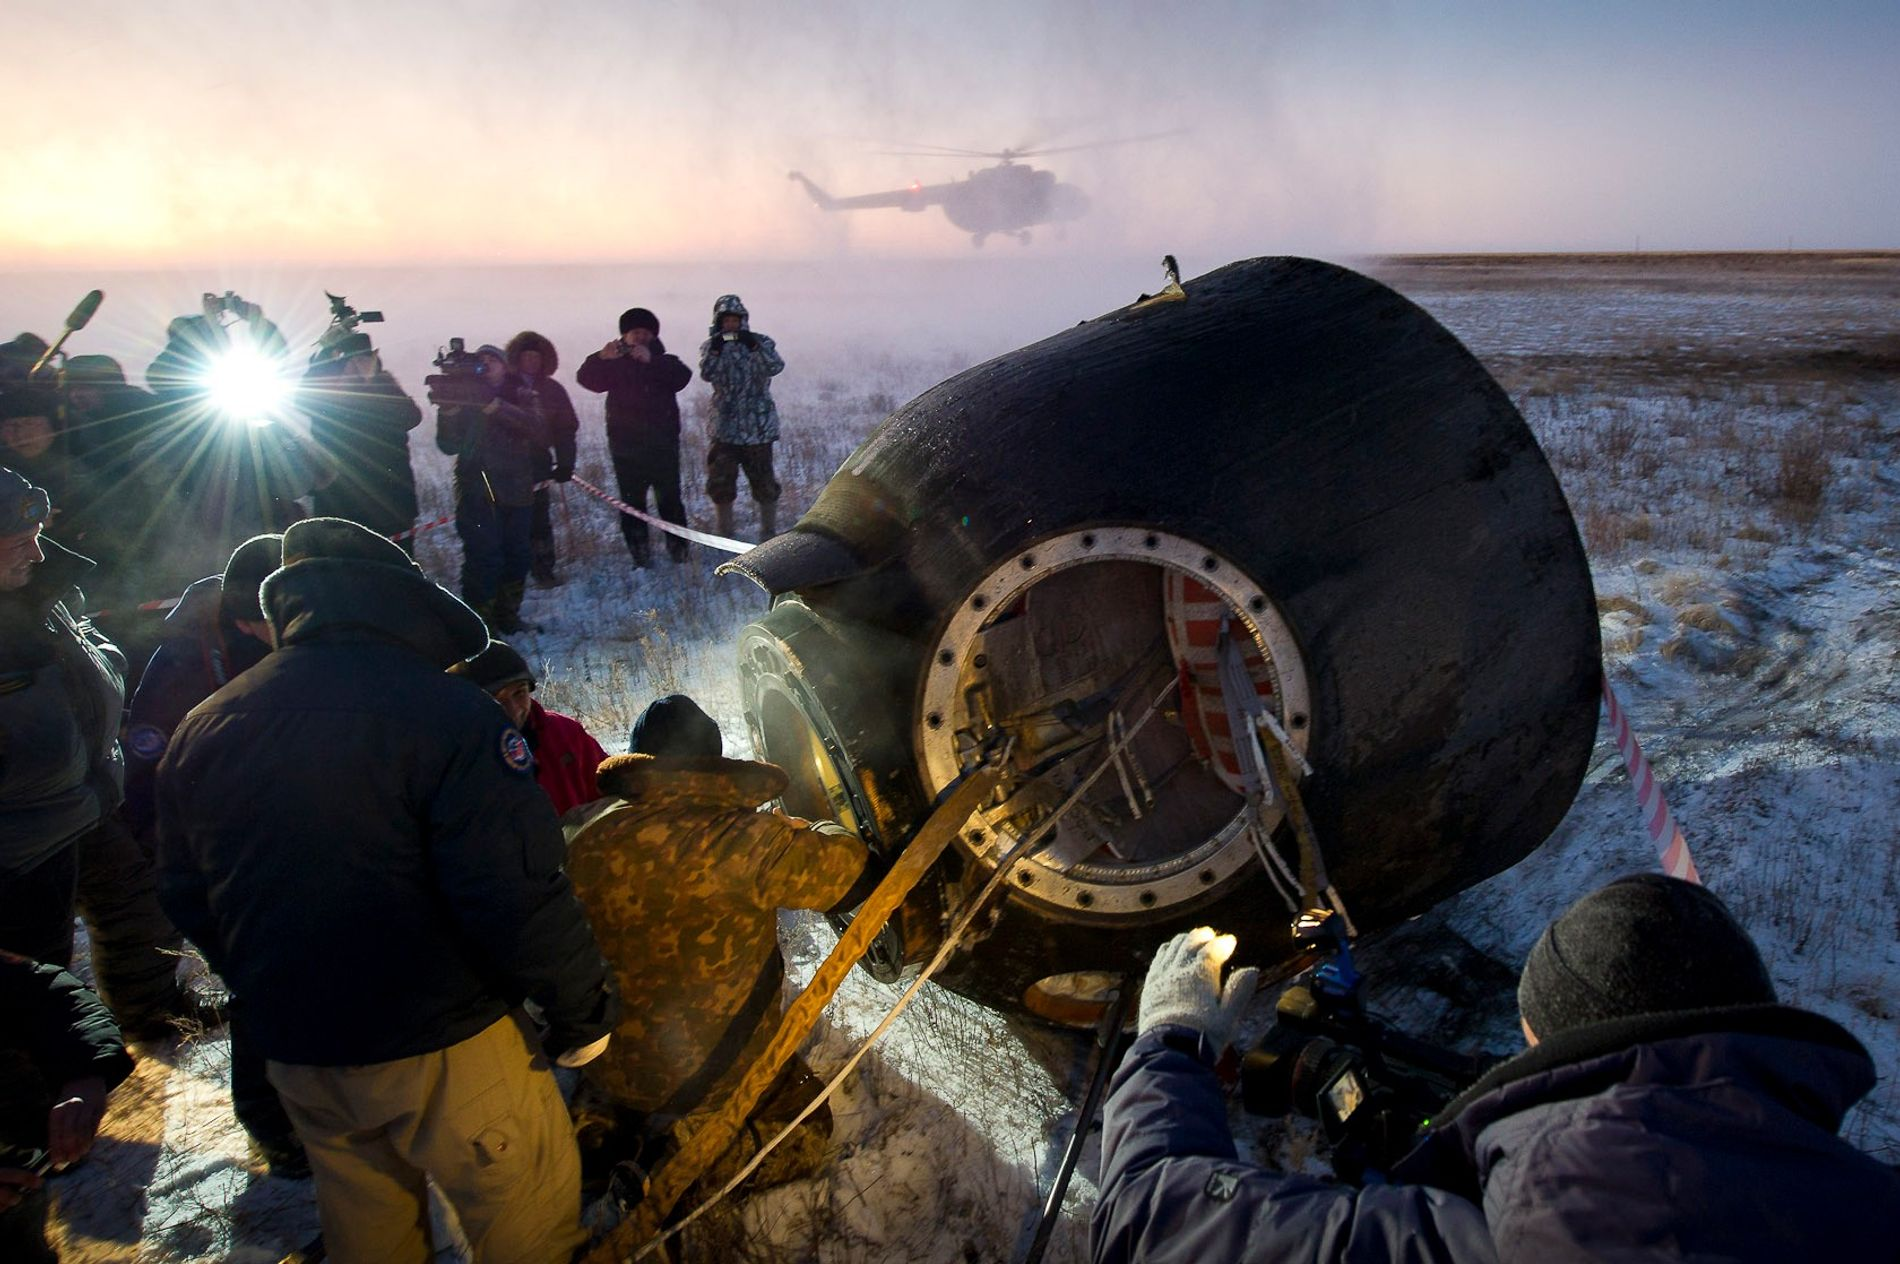 Support personnel help the Soyuz TMA-02M passengers—NASA astronaut Mike Fossum, Russian cosmonaut Sergei Volkov, and Japanese astronaut Satoshi Furuka—disembark following their five-month mission on the International Space Station.